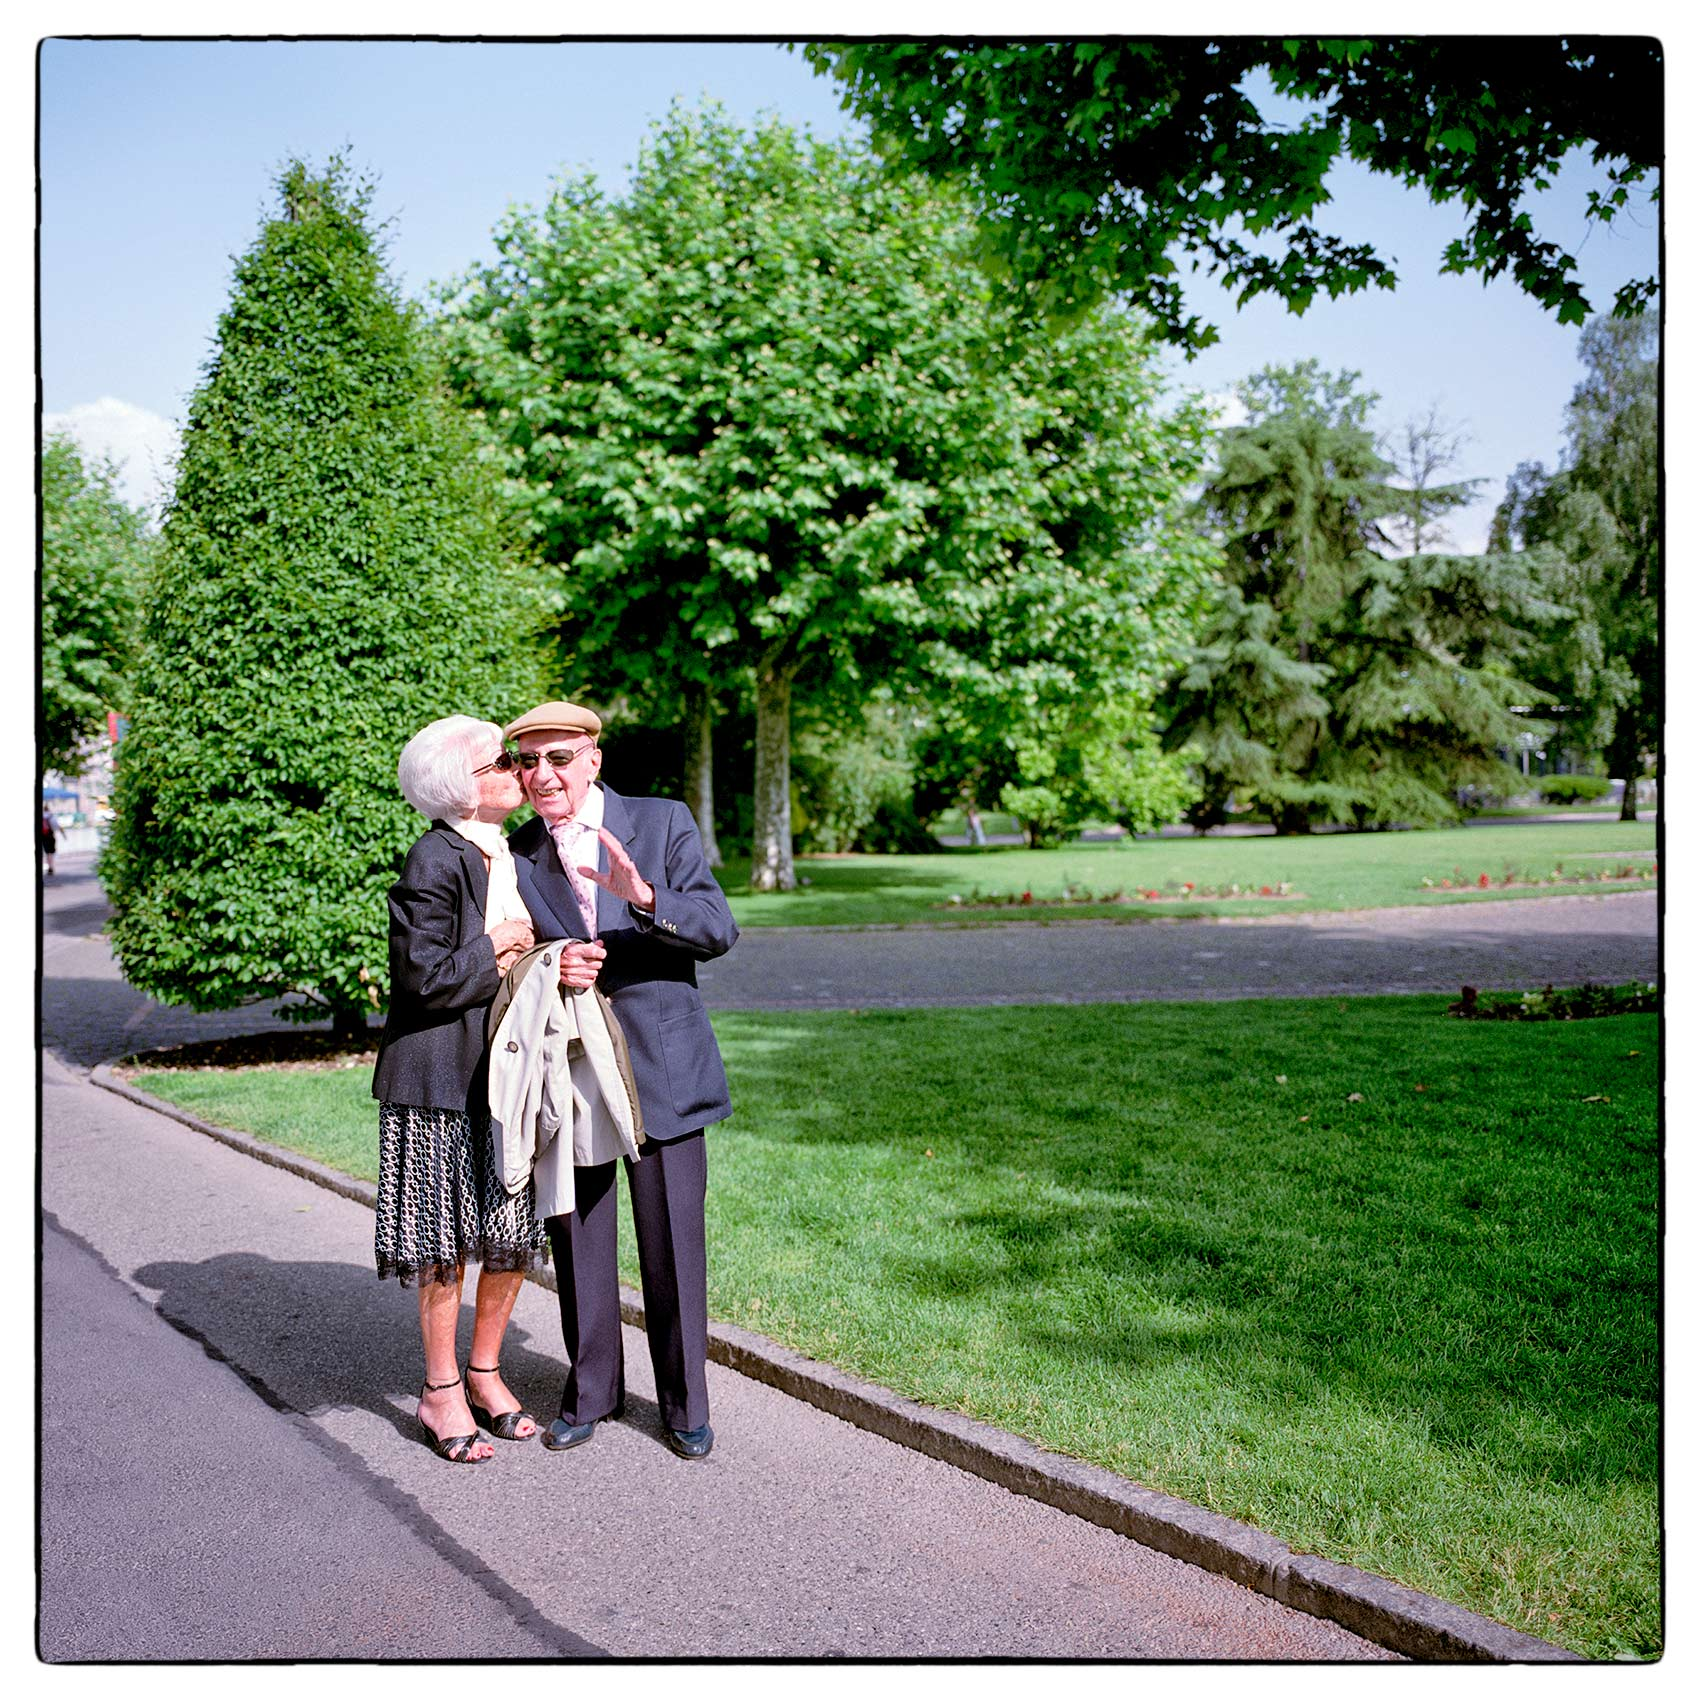 an-older-couple-enjoy-each-others-company-as-the-walk-through-a-park-in-geneva-switzerland